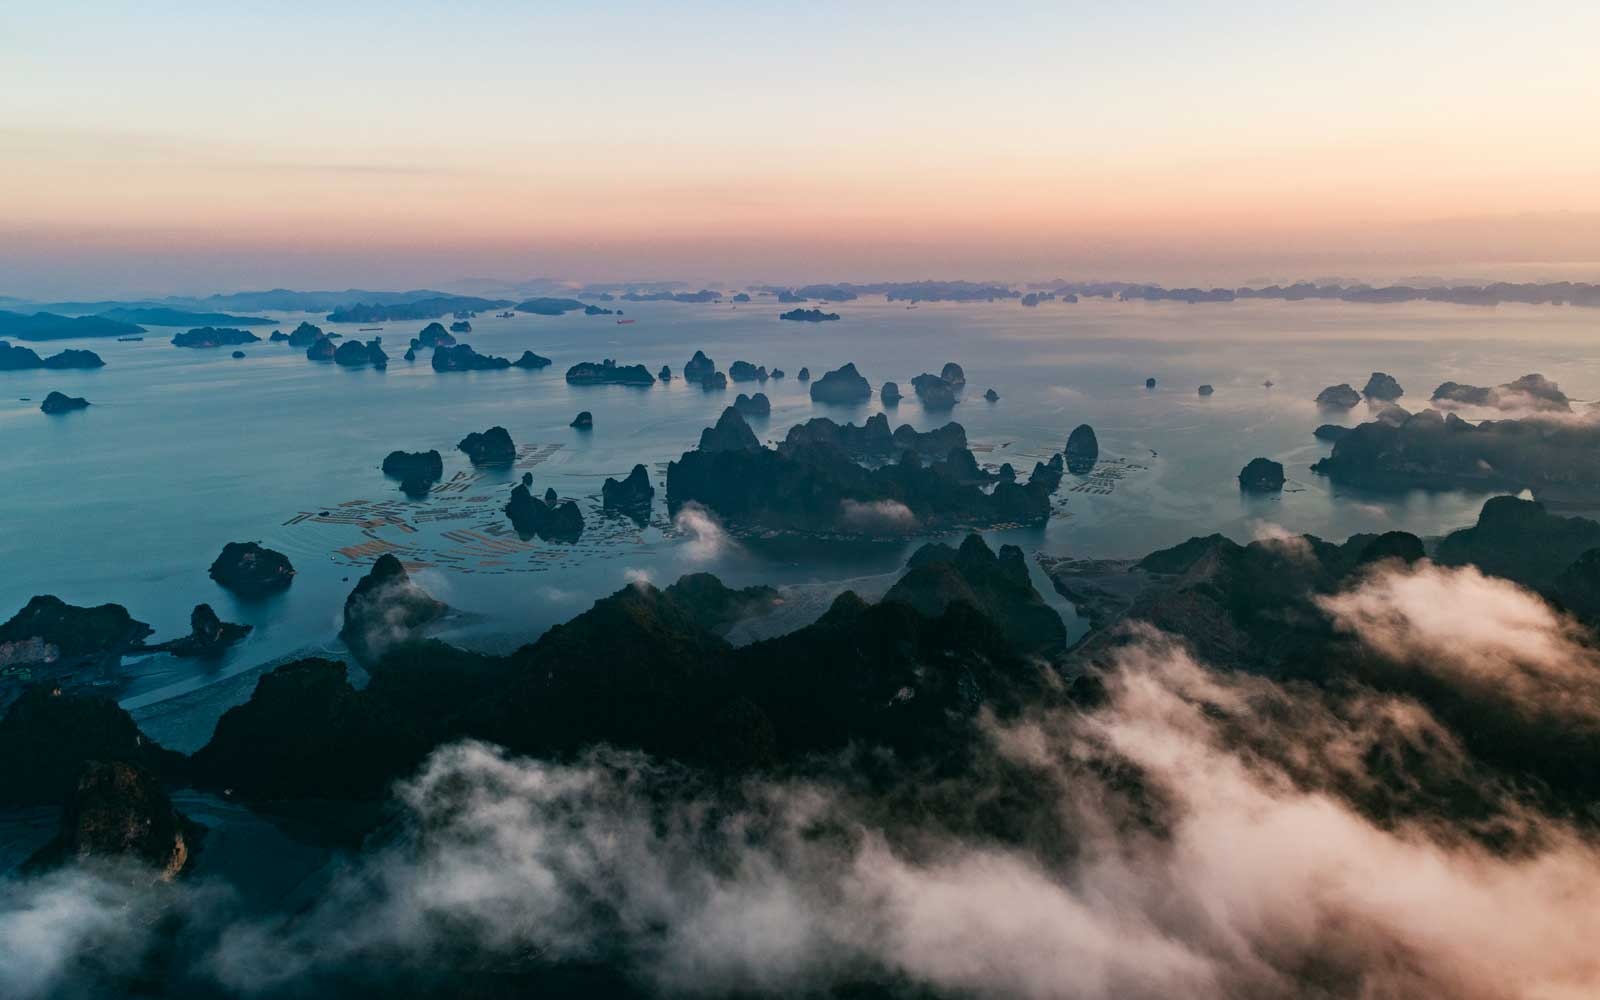 The Best Way to See Vietnam's Iconic Ha Long Bay Is by Soaring Over It in a Helicopter